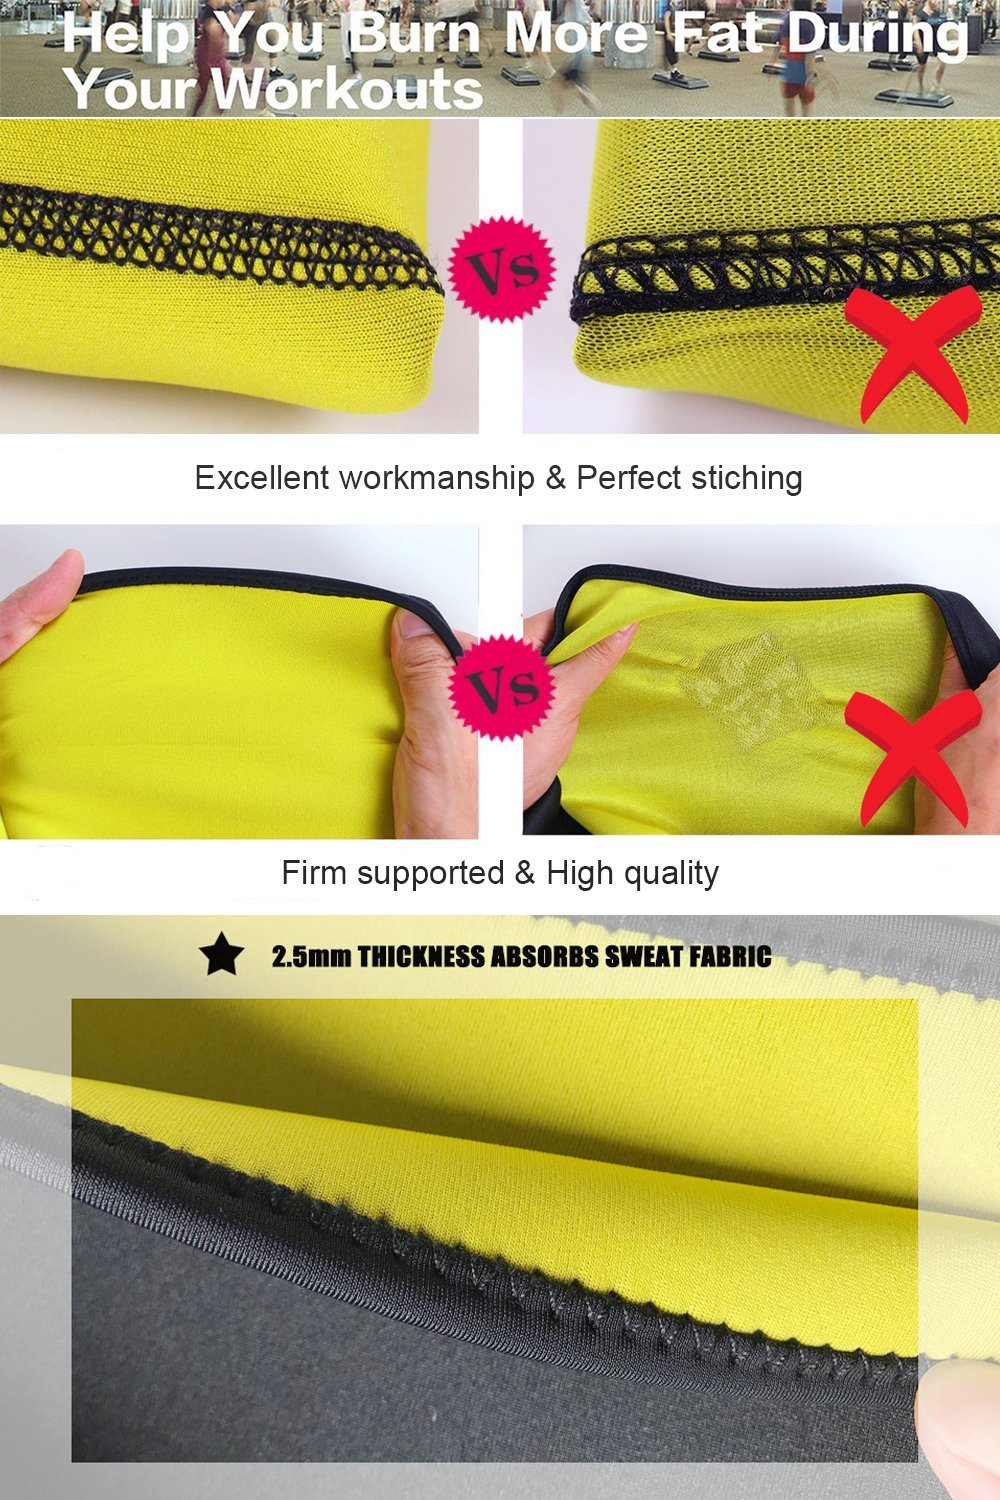 FIRM ABS Hot Slimming Body Shaper For Women Tummy Weight Loss Thermo Neoperne Sweat Sauna Vest